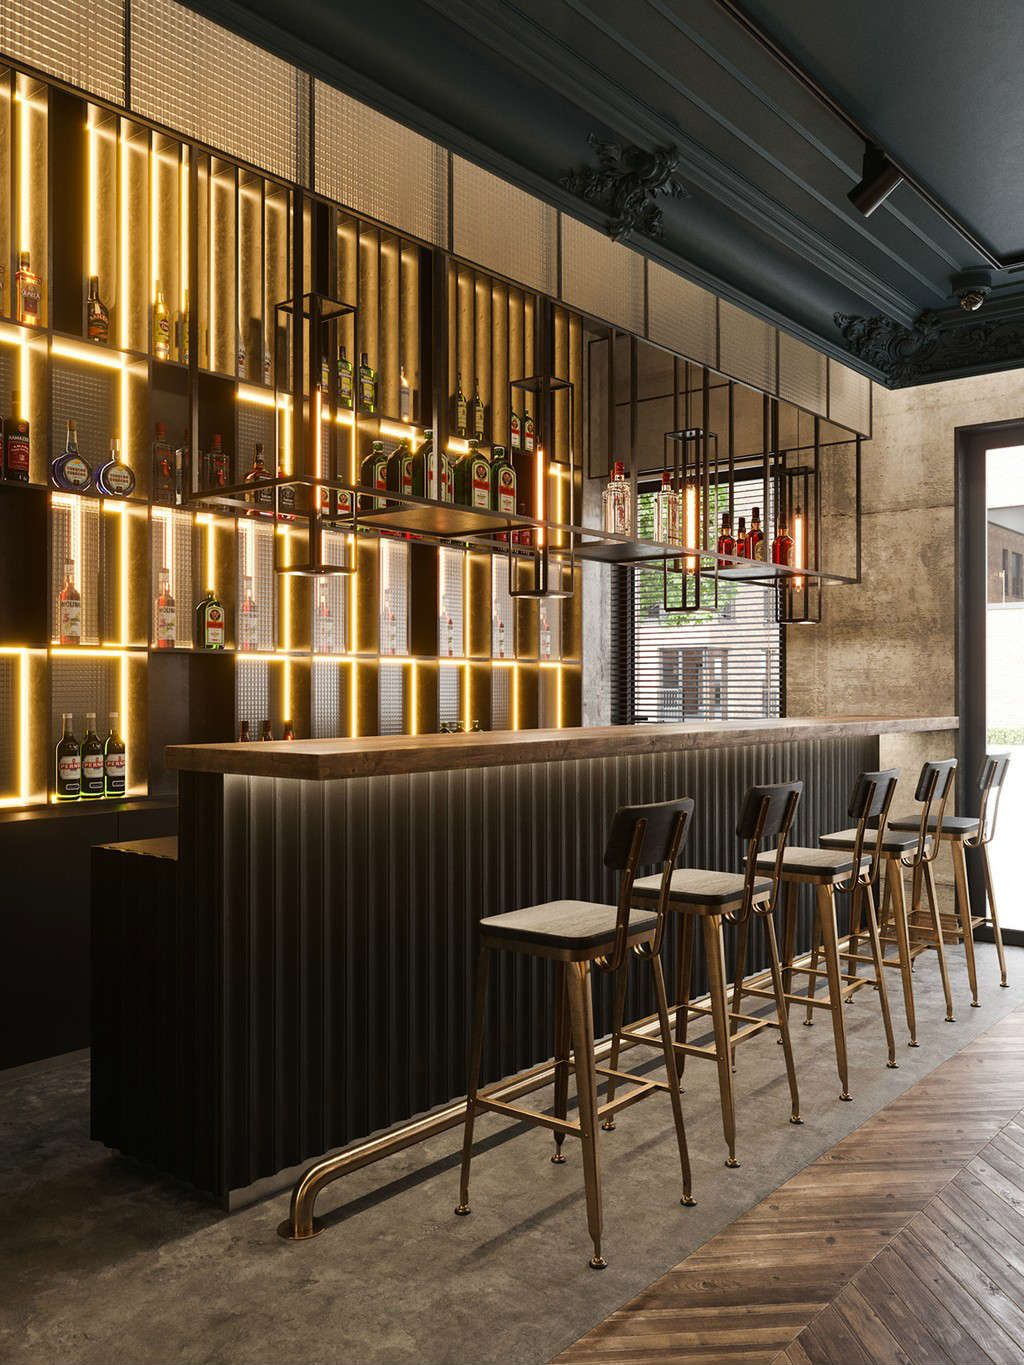 Finding Counter And Bar Stools Can Be A Tough Proposition You Need To Find The Right Silhouet Contemporary Bar Stools Bar Design Restaurant Bar Counter Design